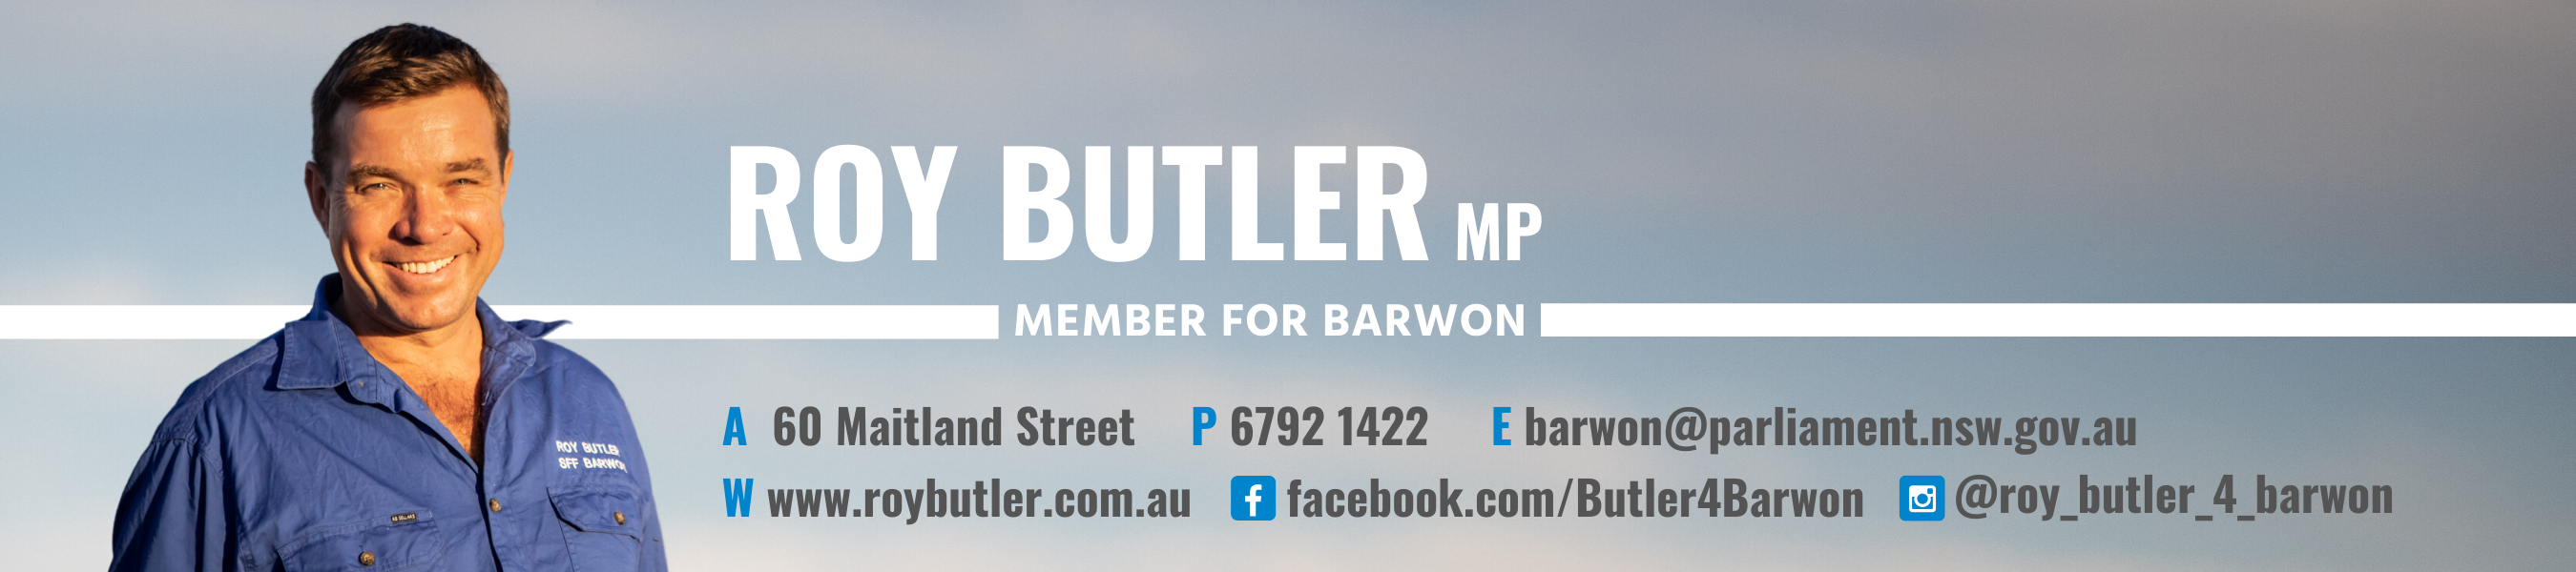 Roy Butler MP Member for Barwon